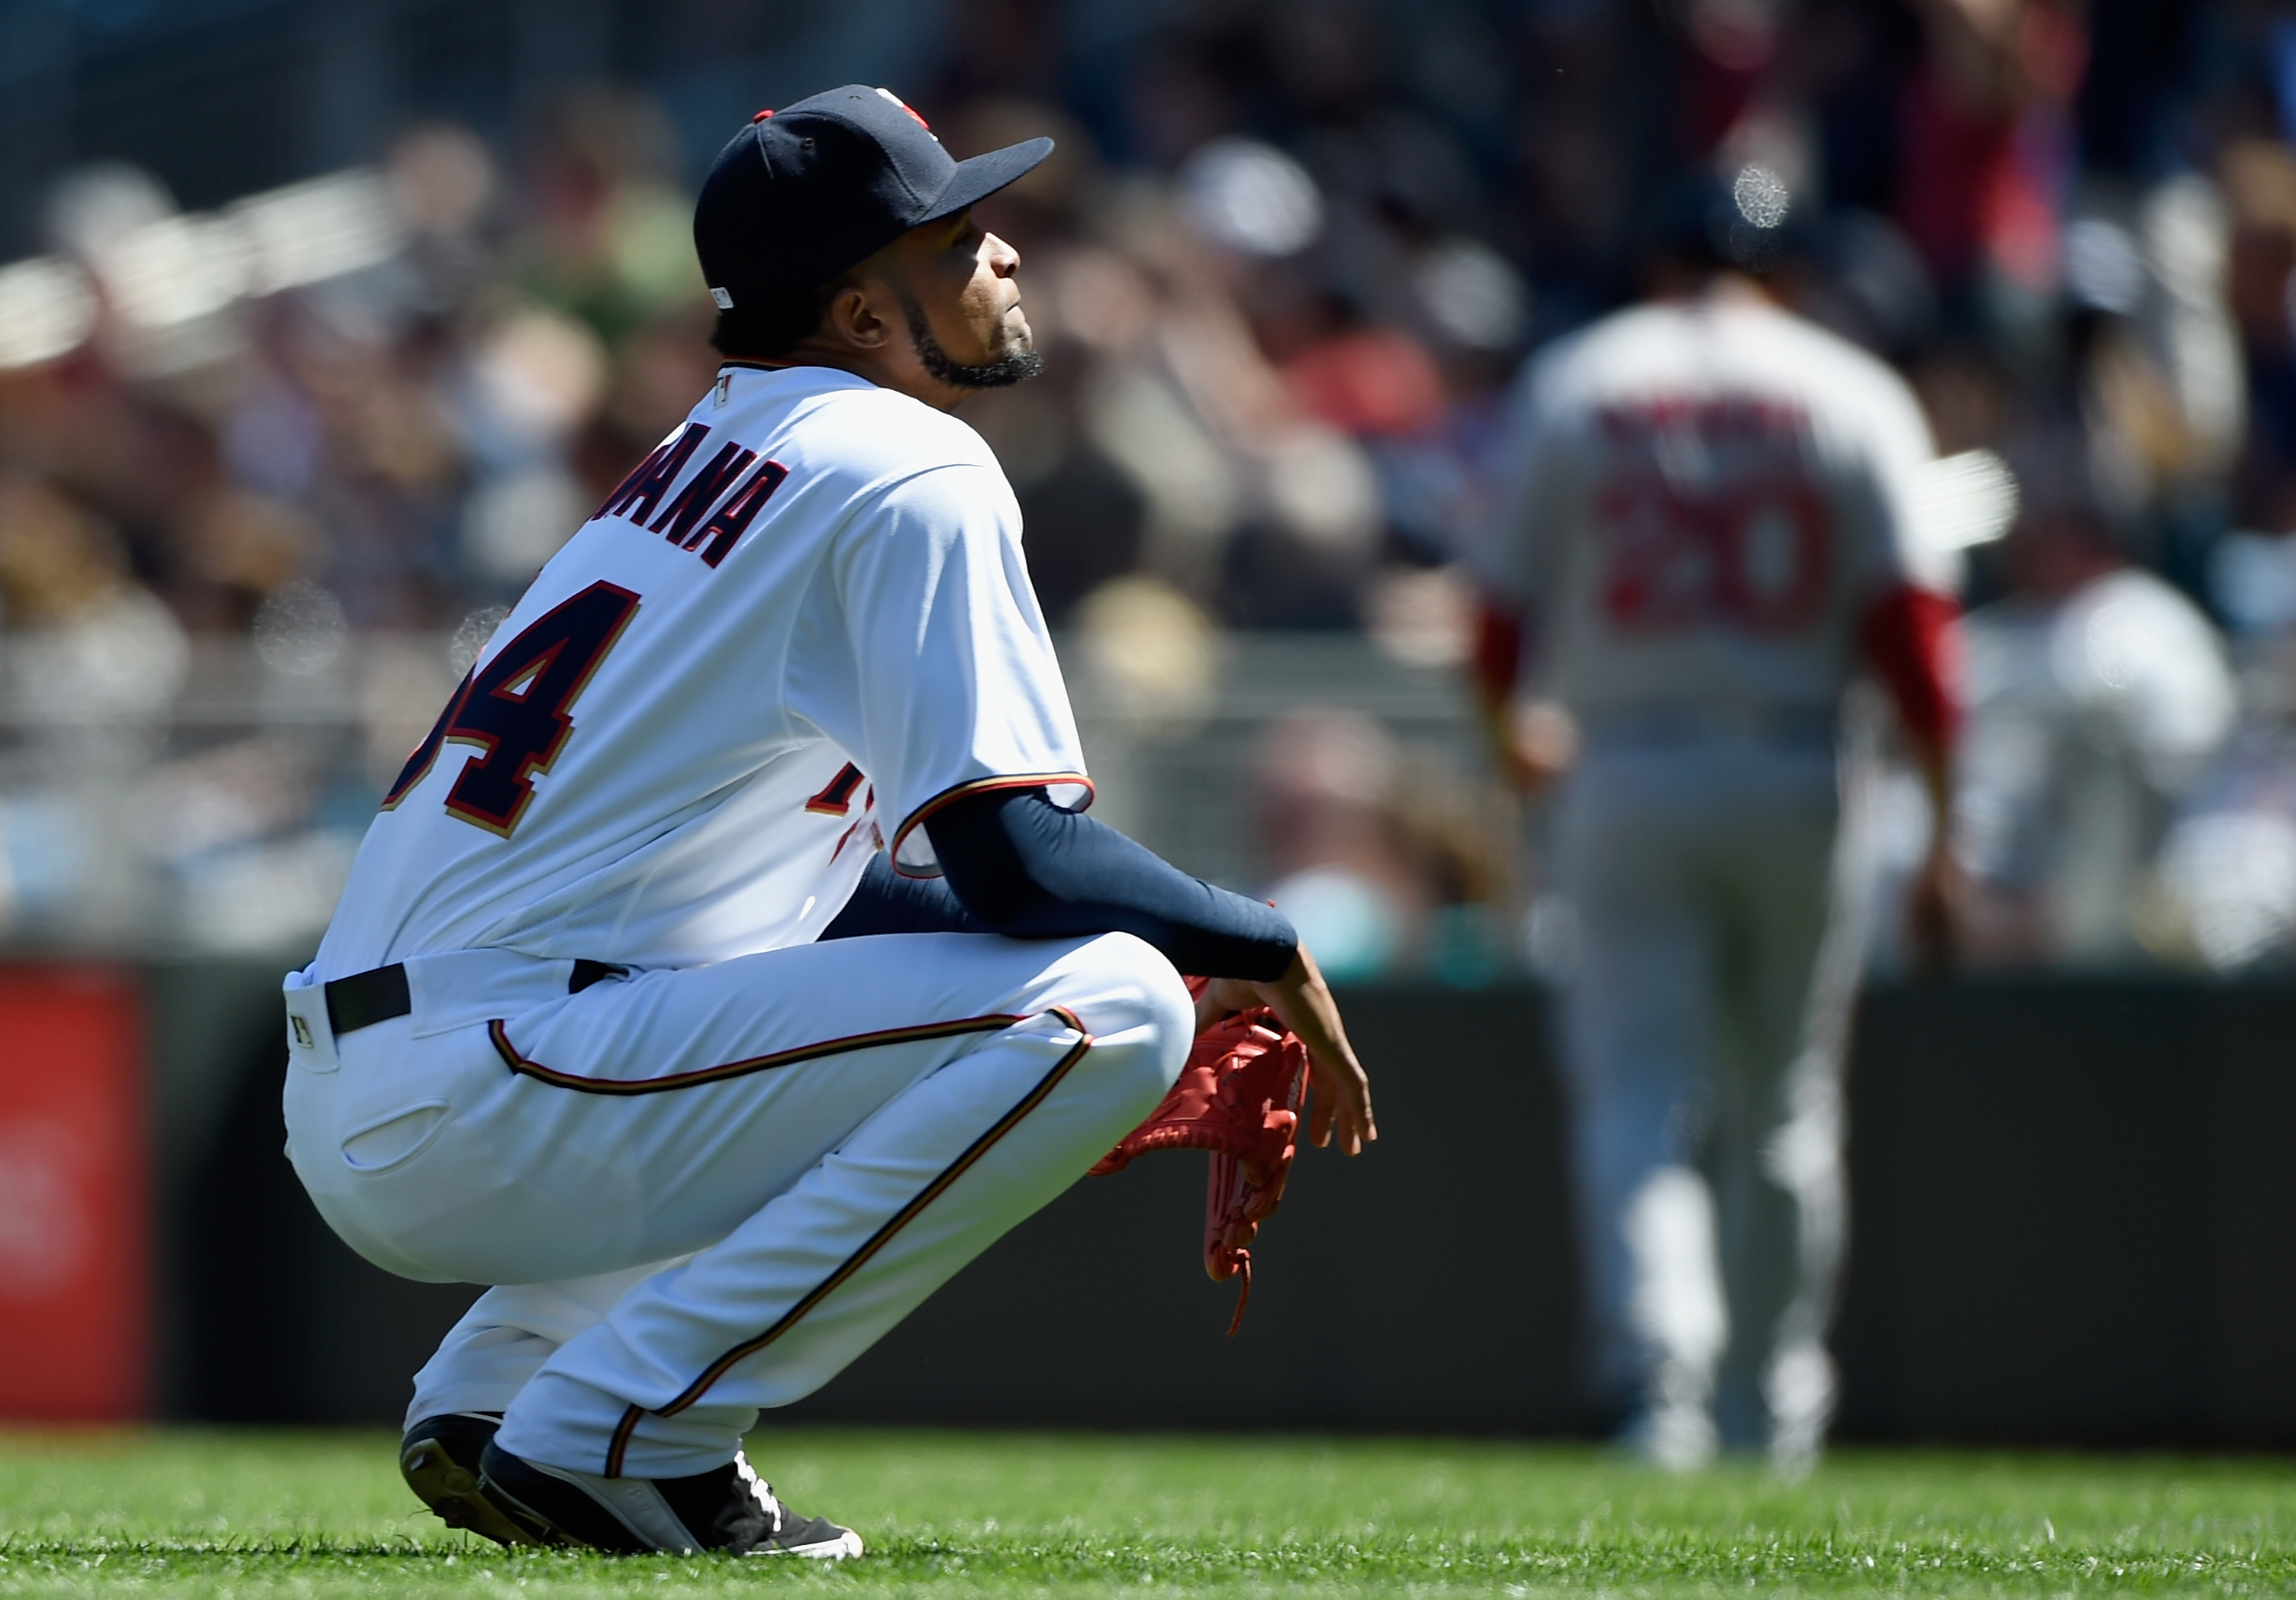 Twins' Ervin Santana out up to 3 months after finger surgery